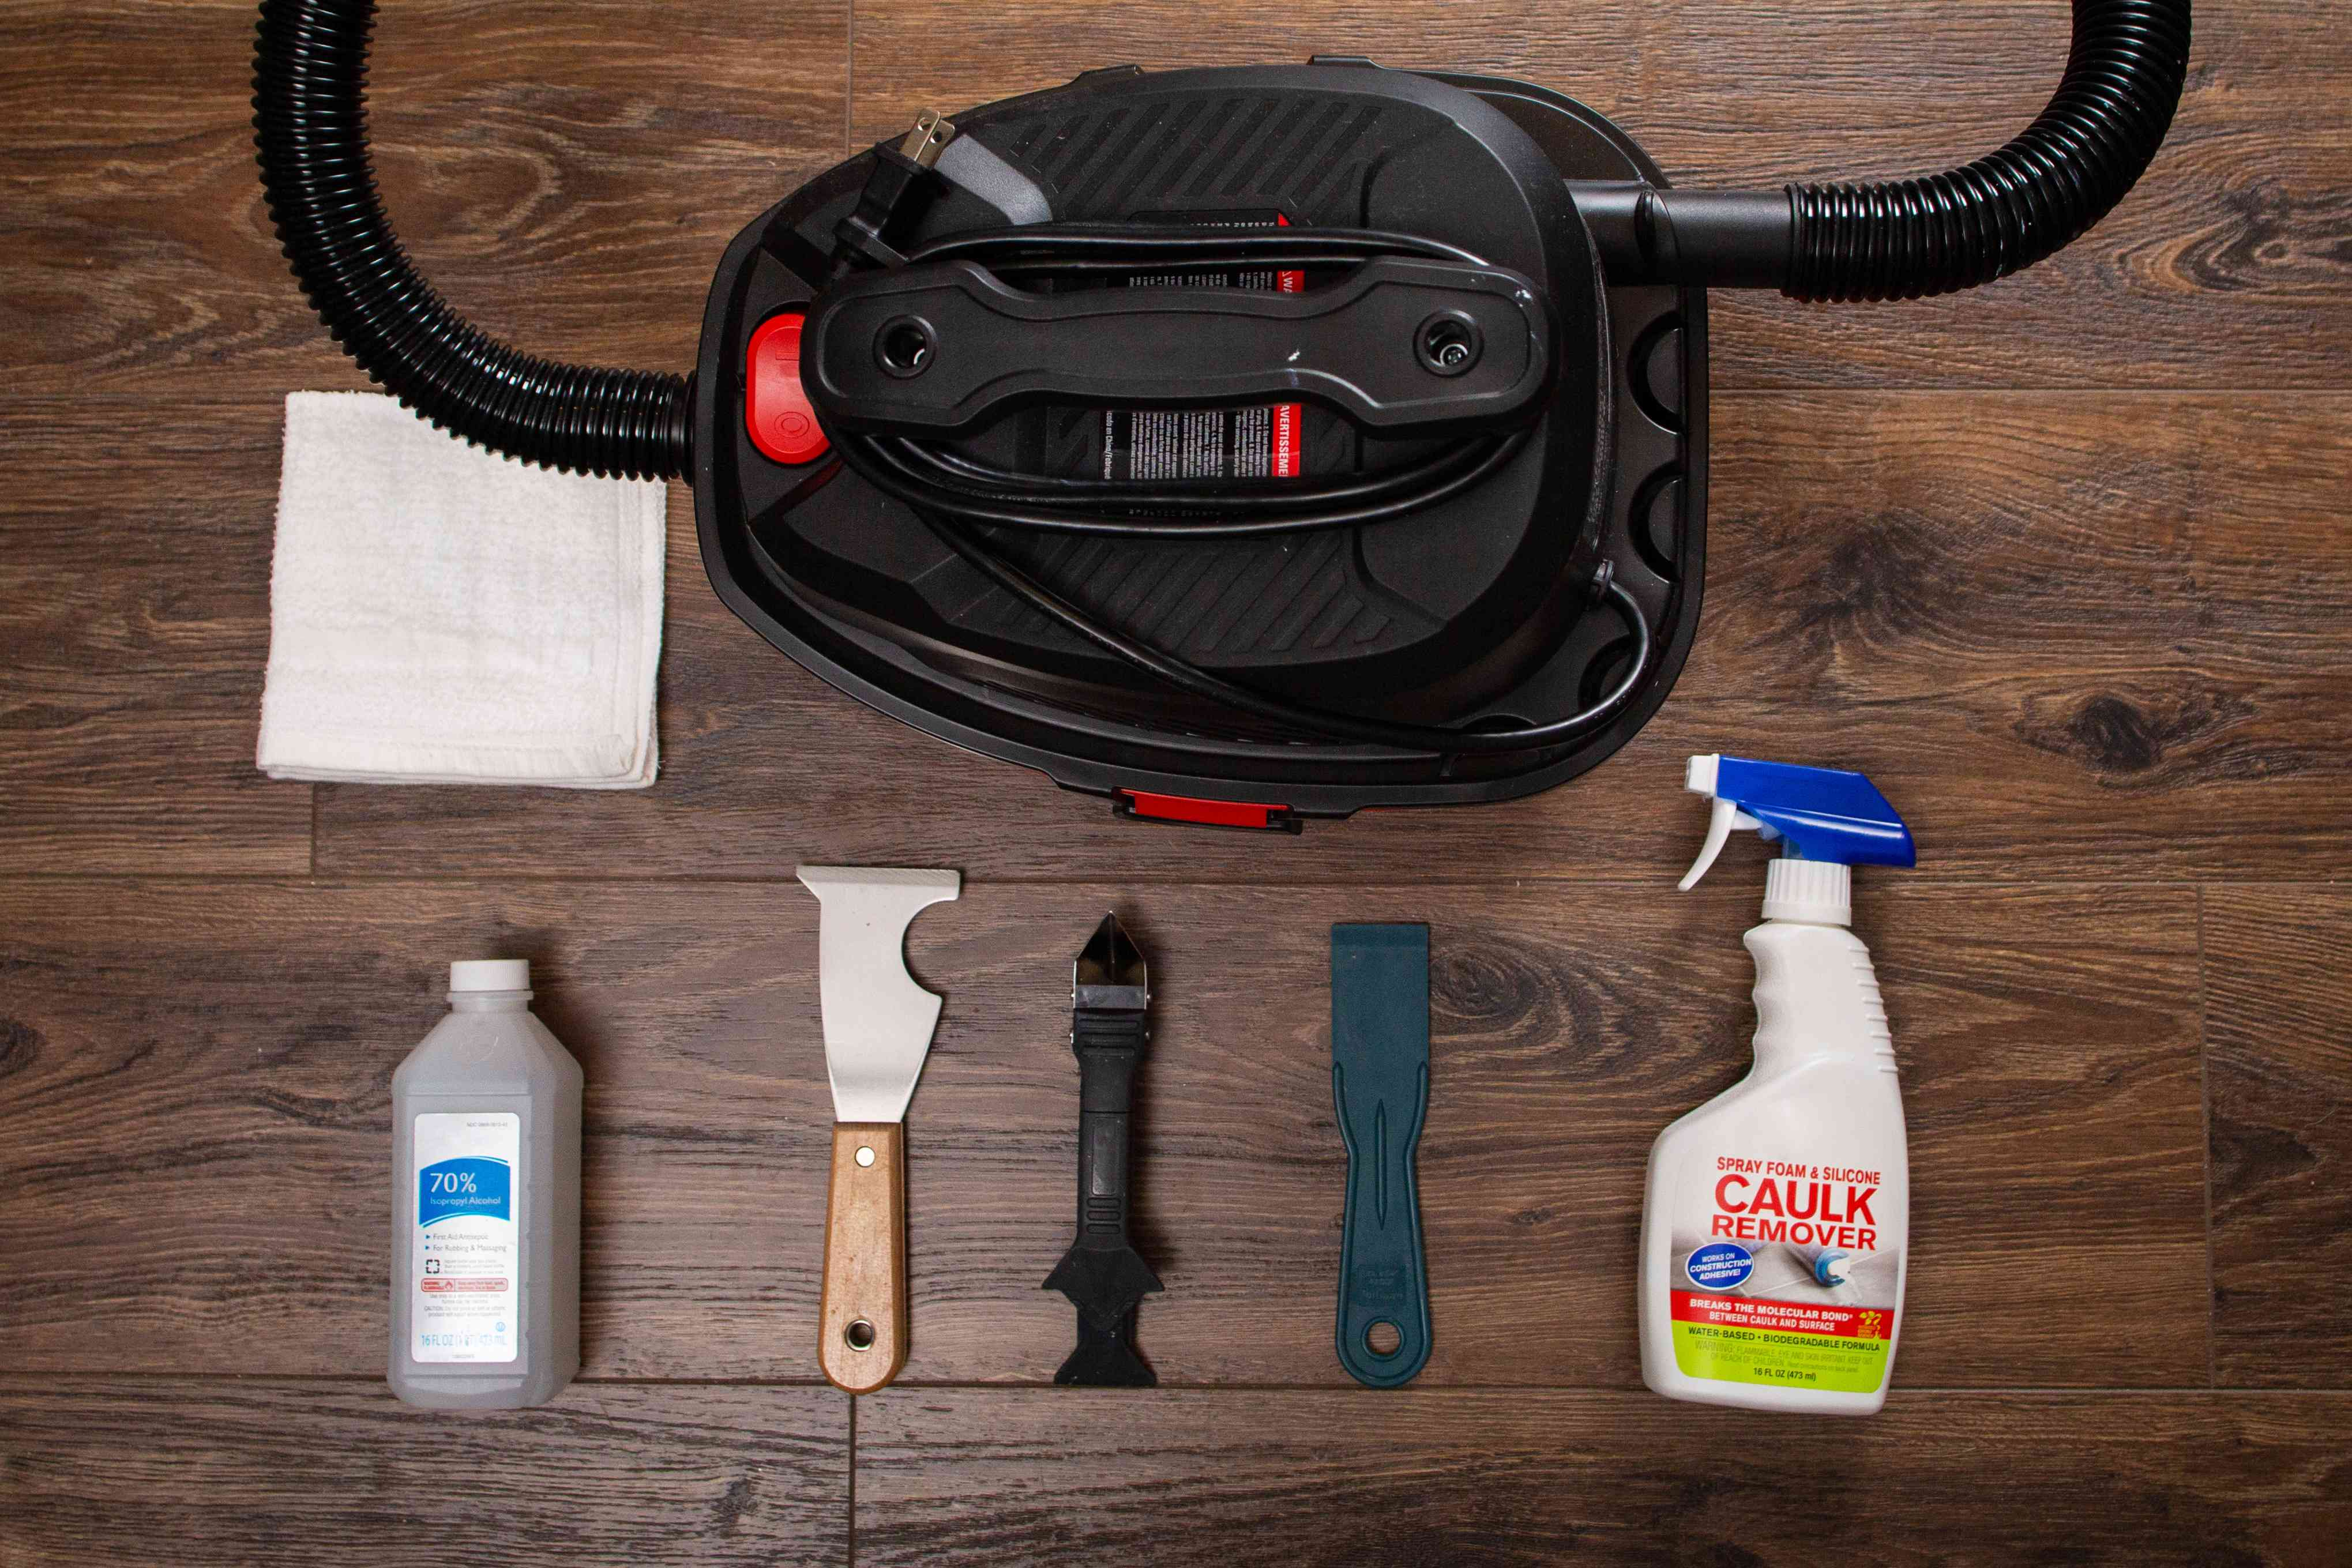 Materials and tools to remove old caulk on wooden surface